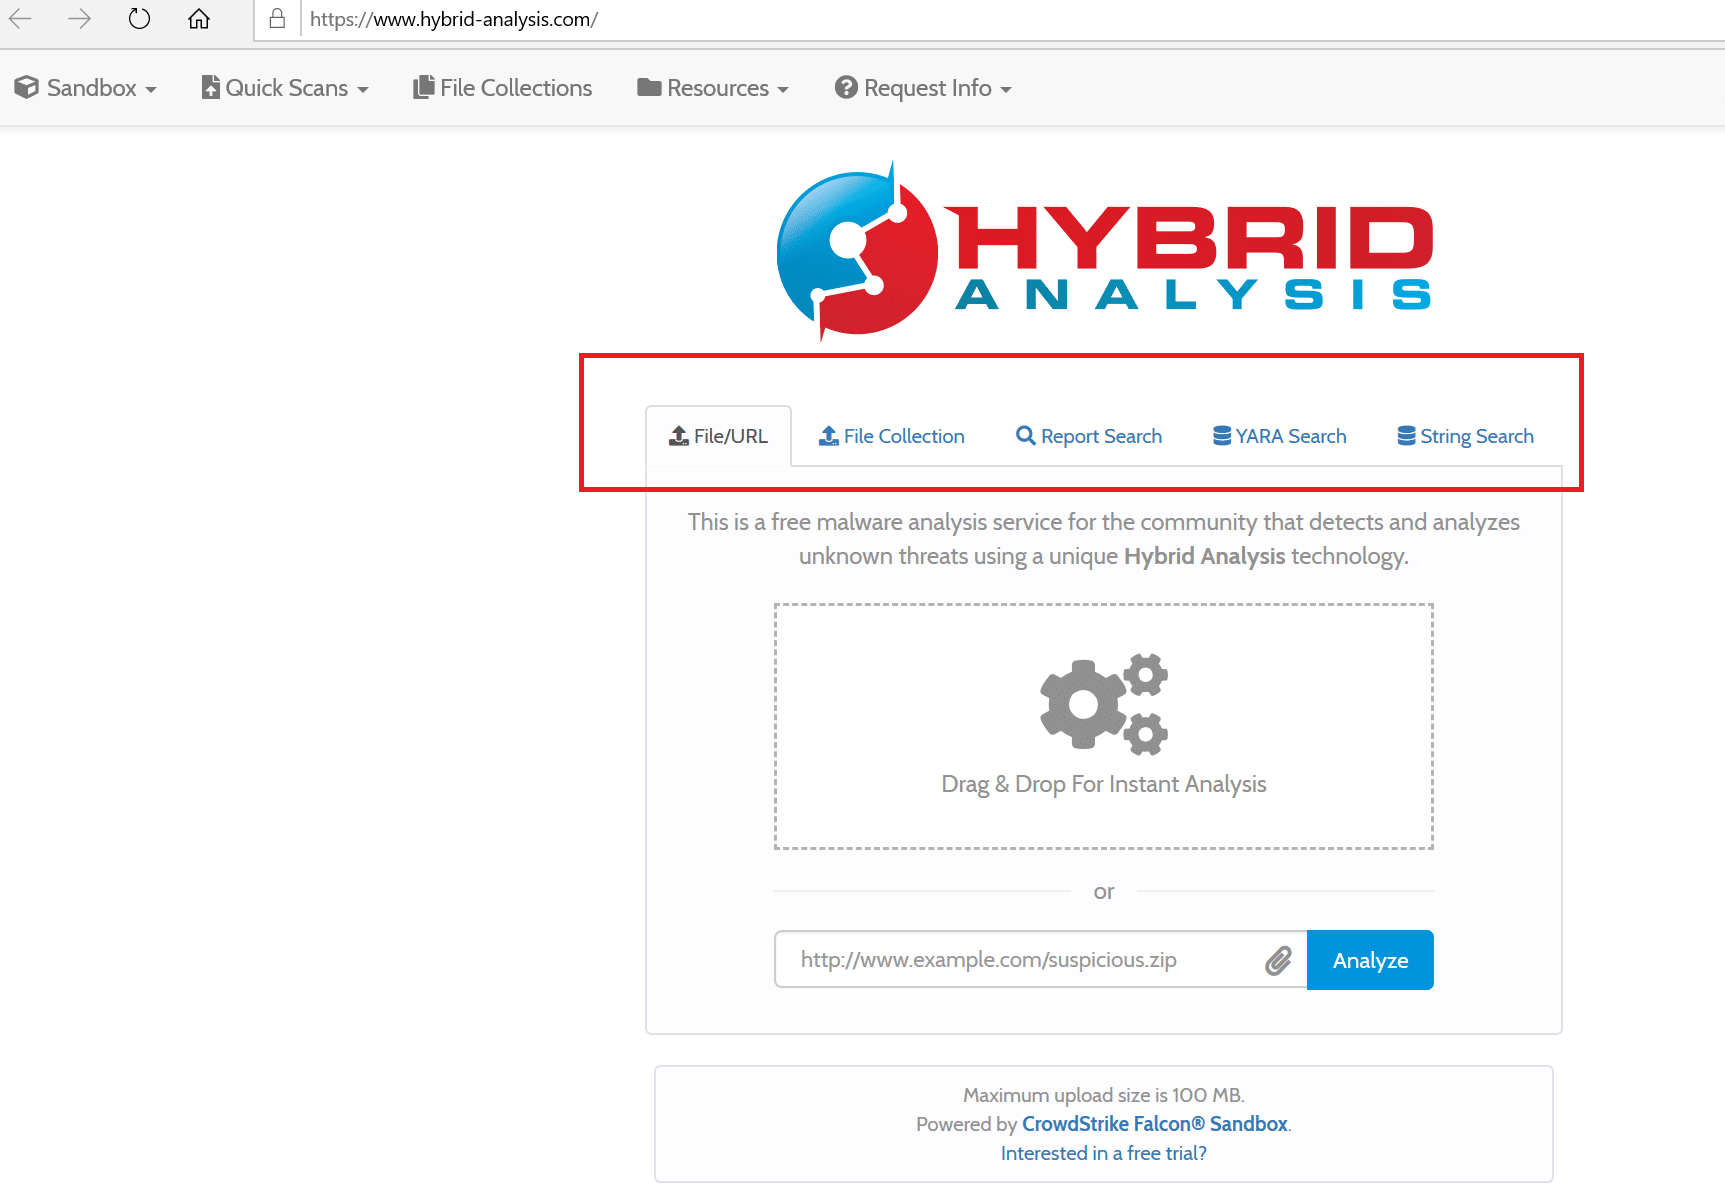 Submit file for Hybrid Analysis by Crowdstrike